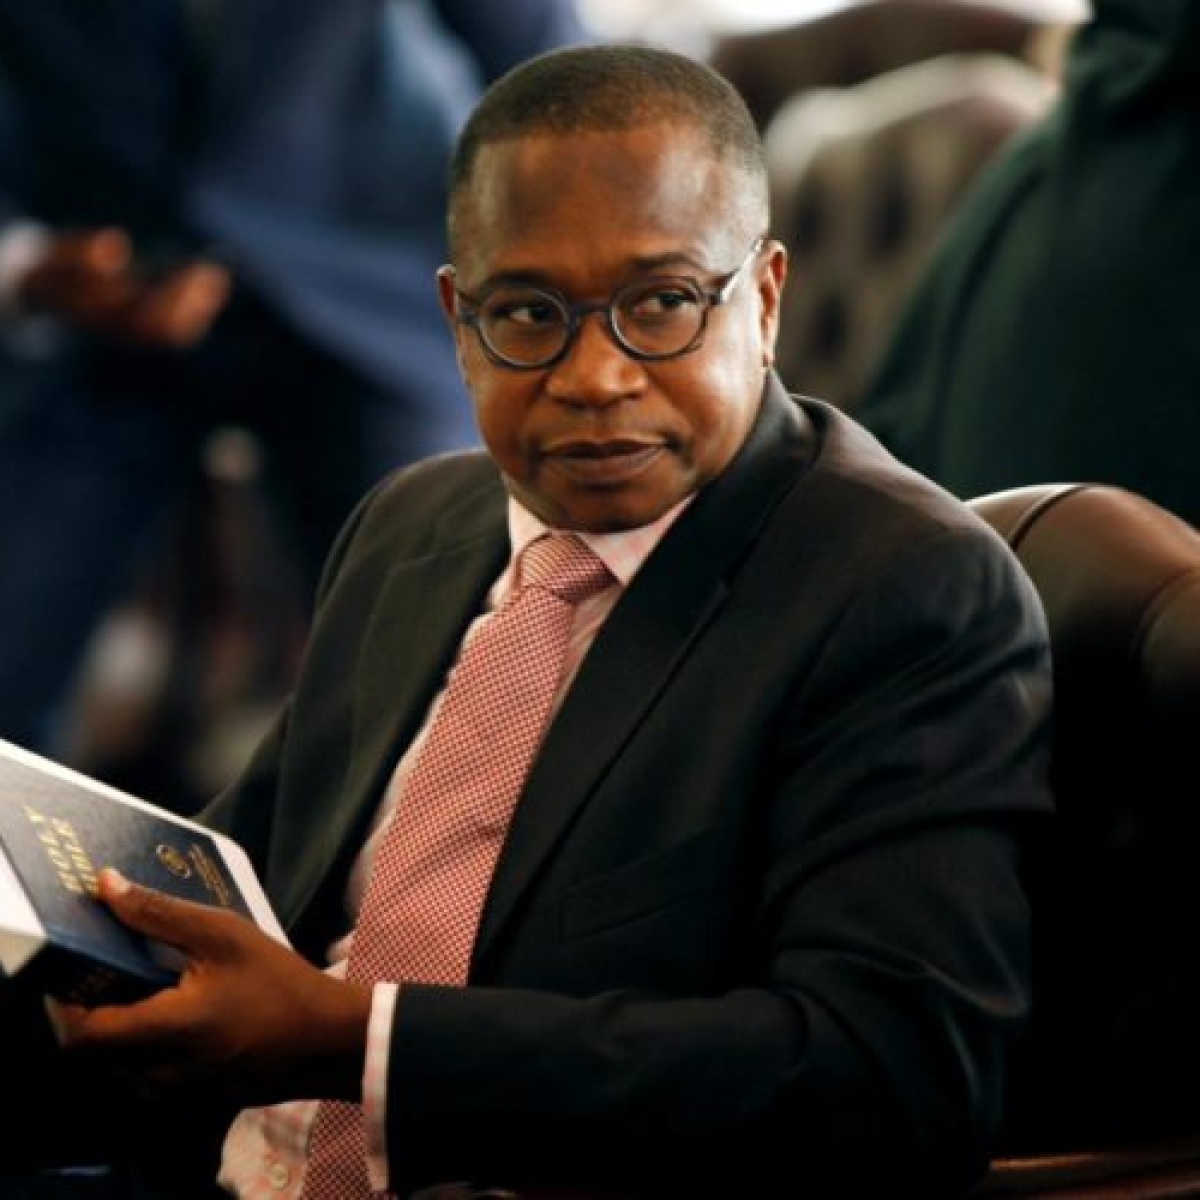 Zimbabwe's economy to shrink by 4.5% due to impact of COVID-19: Finance Minister Nthuli Ncube